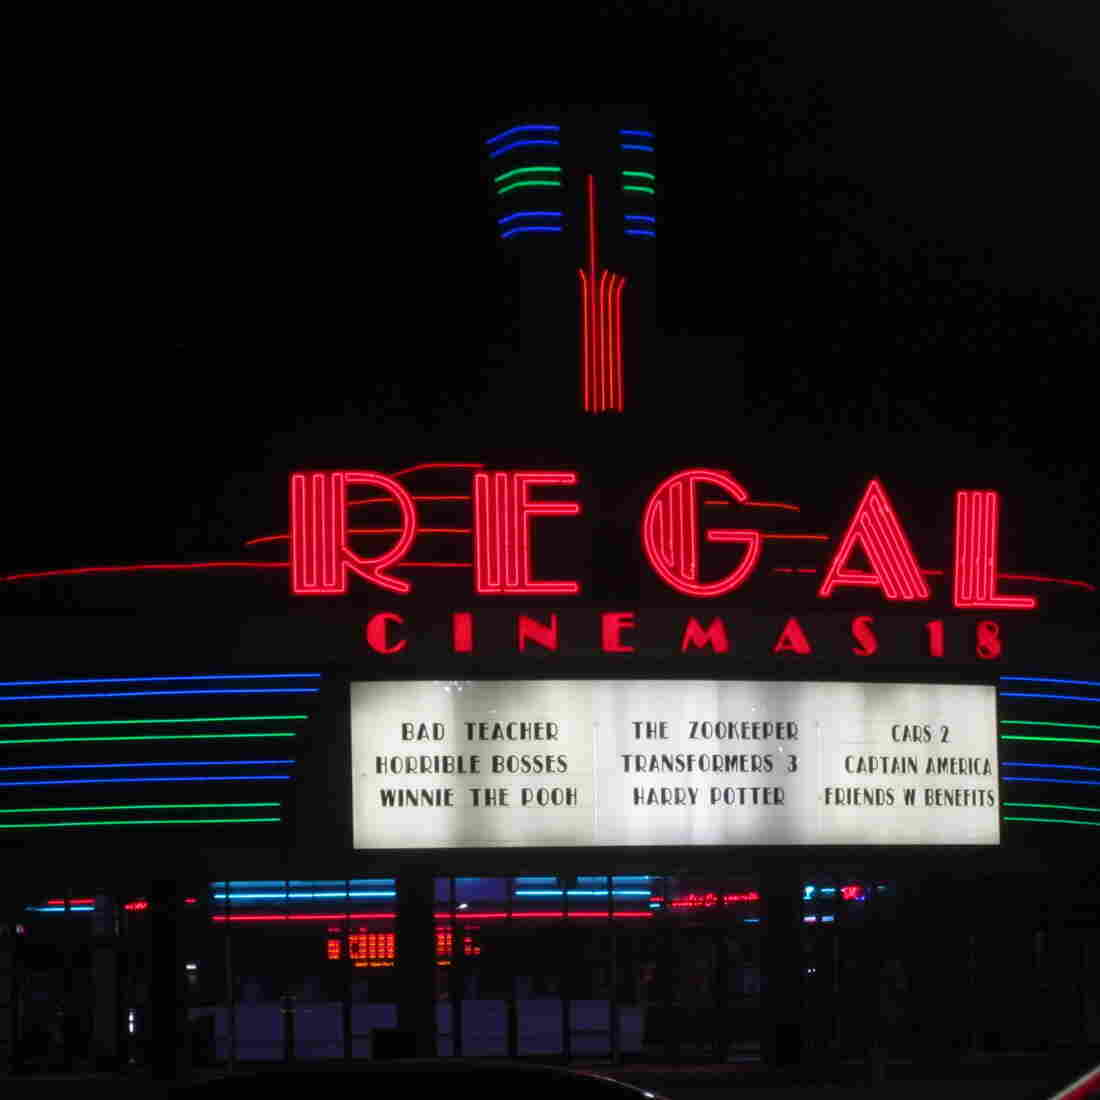 Catching A Movie? Regal Cinemas May Be Checking Your Bag